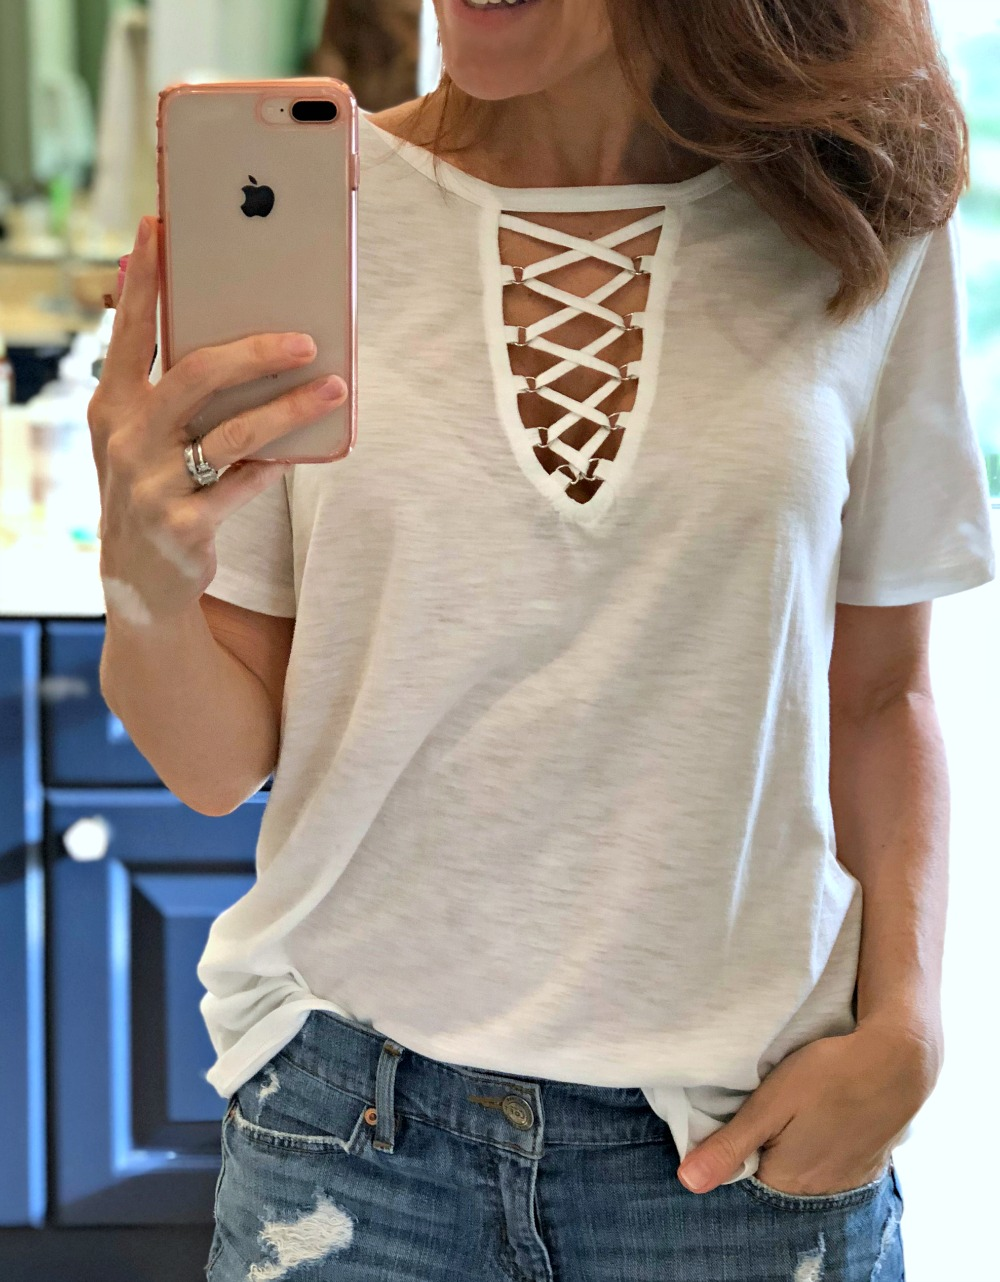 The t-shirt update: six tees worth adding to your closet now // the modern savvy - The Six Cutest Fall TShirts For Your Wardrobe by popular Florida fashion blogger The Modern Savvy